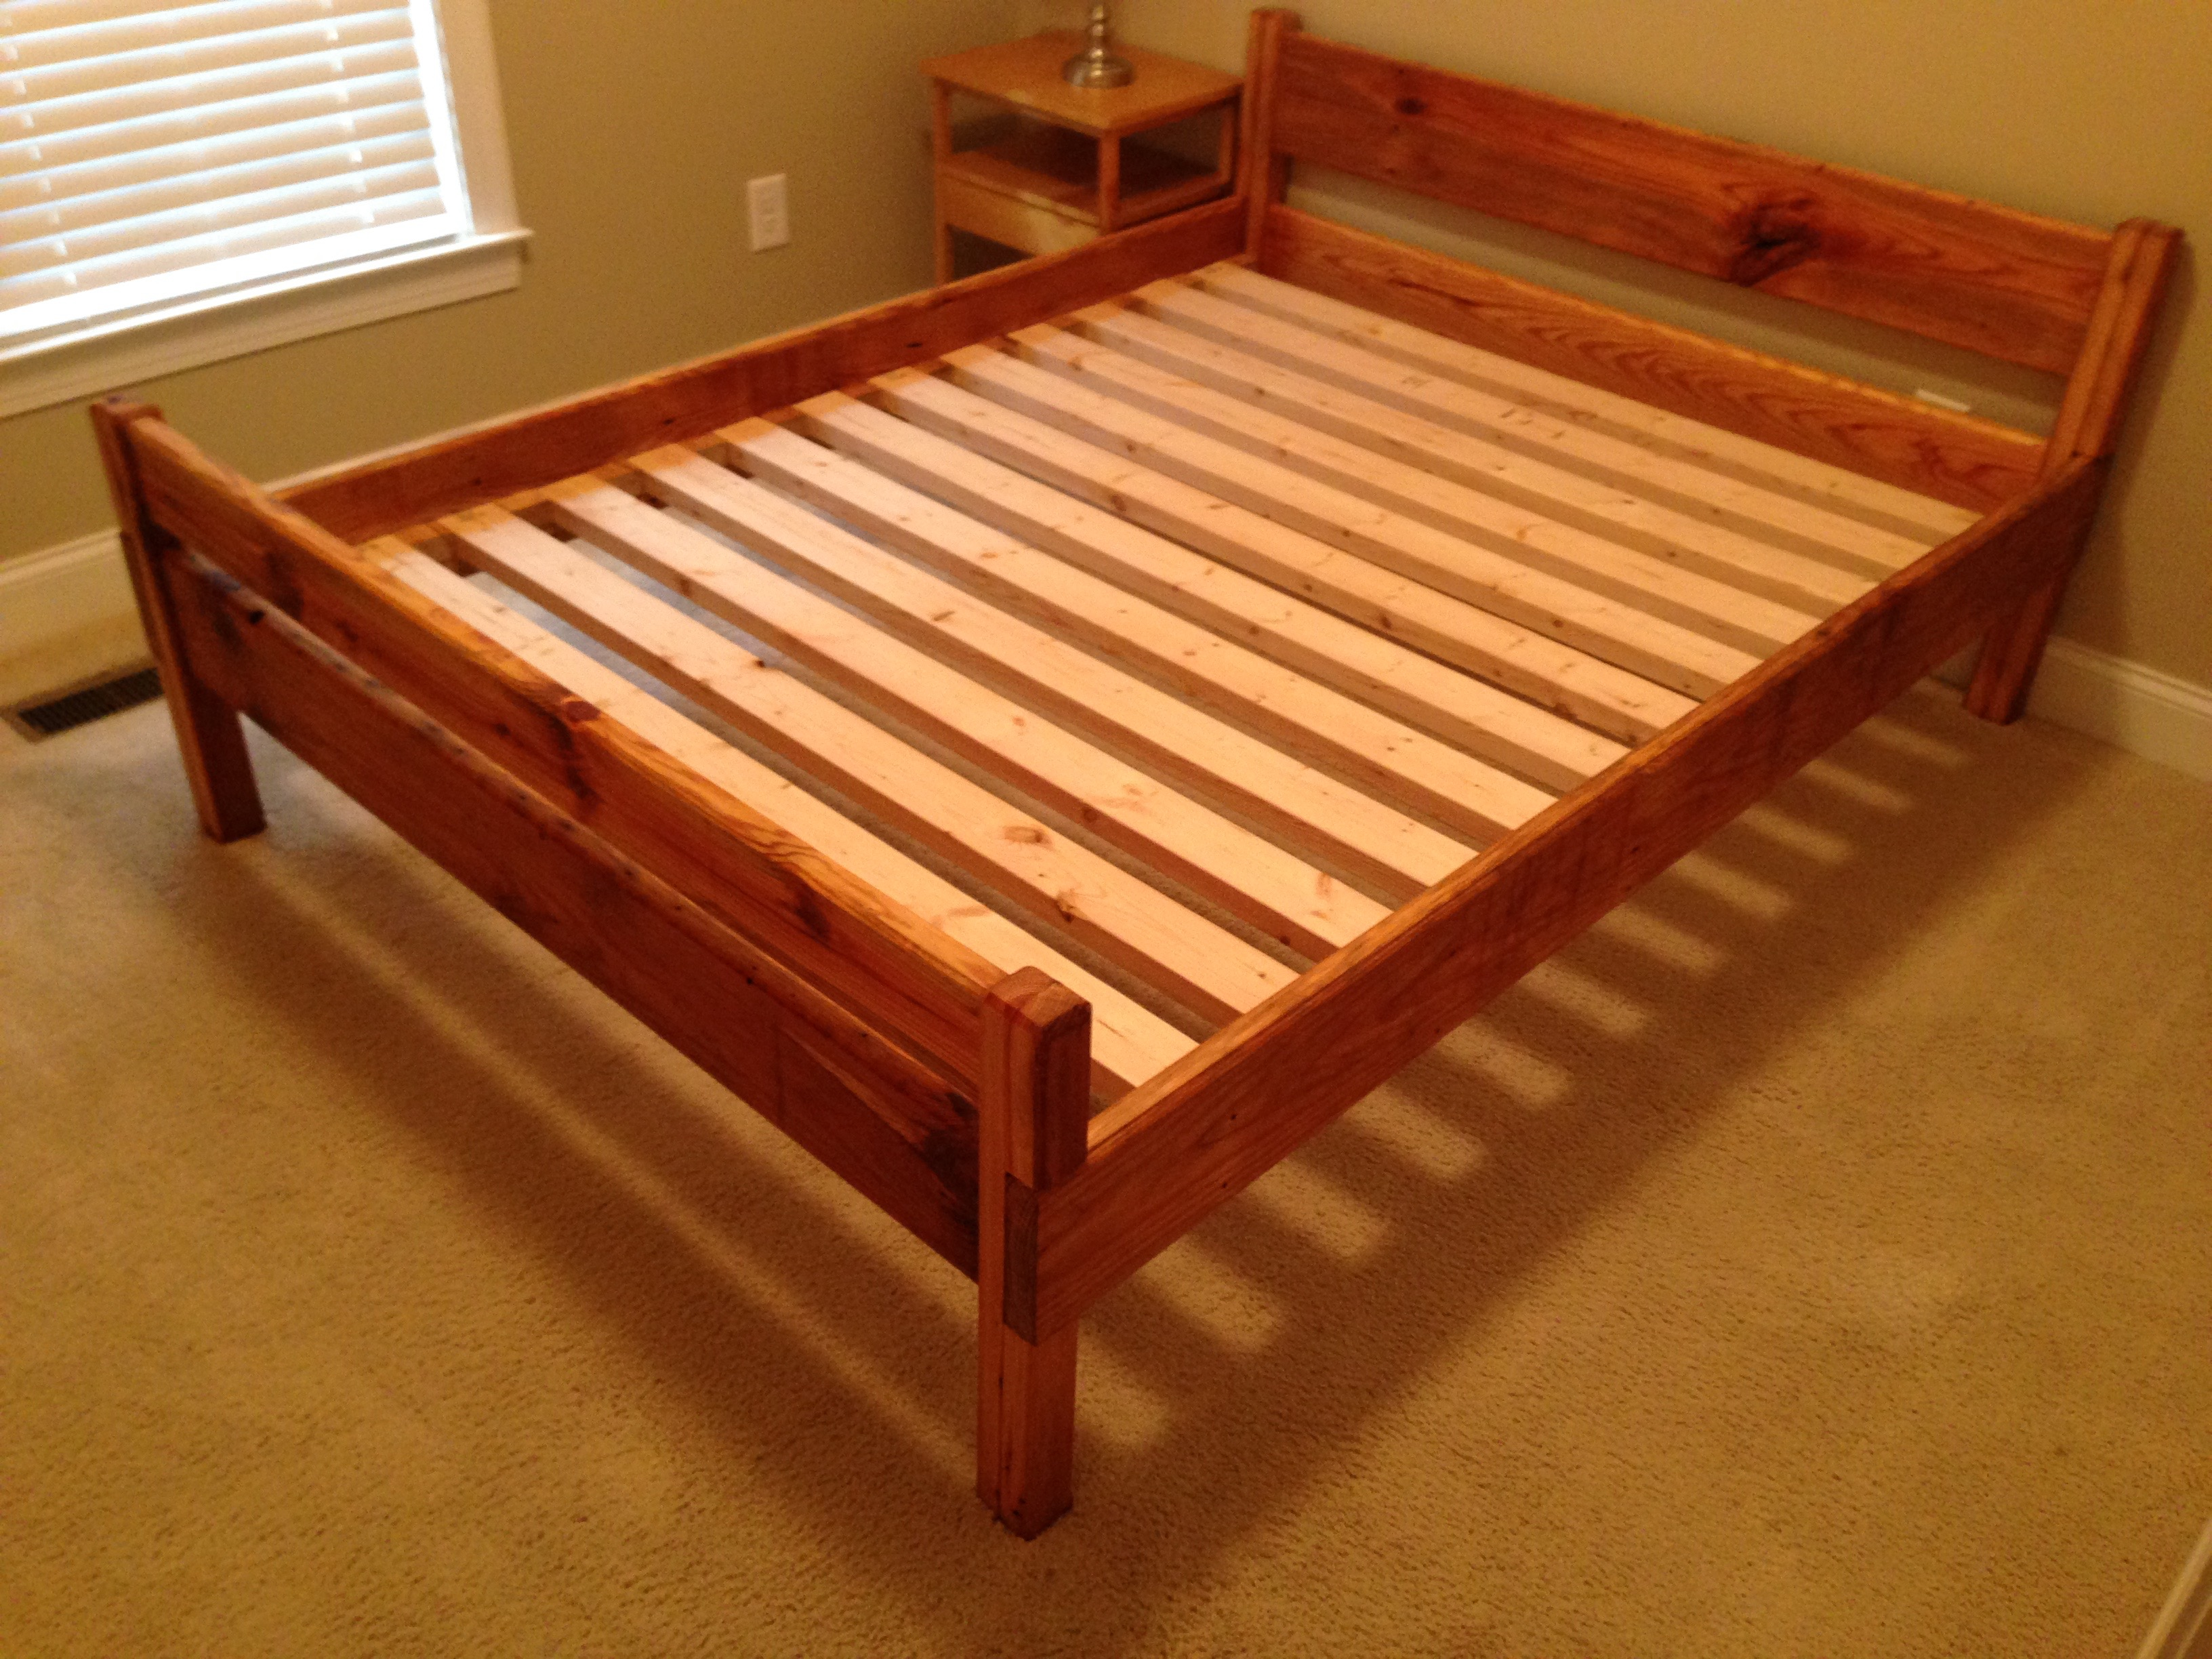 Queen-size bed frame floor attractive bed frame for Queen 18 Picture of the plans free loft ZLAWTSX